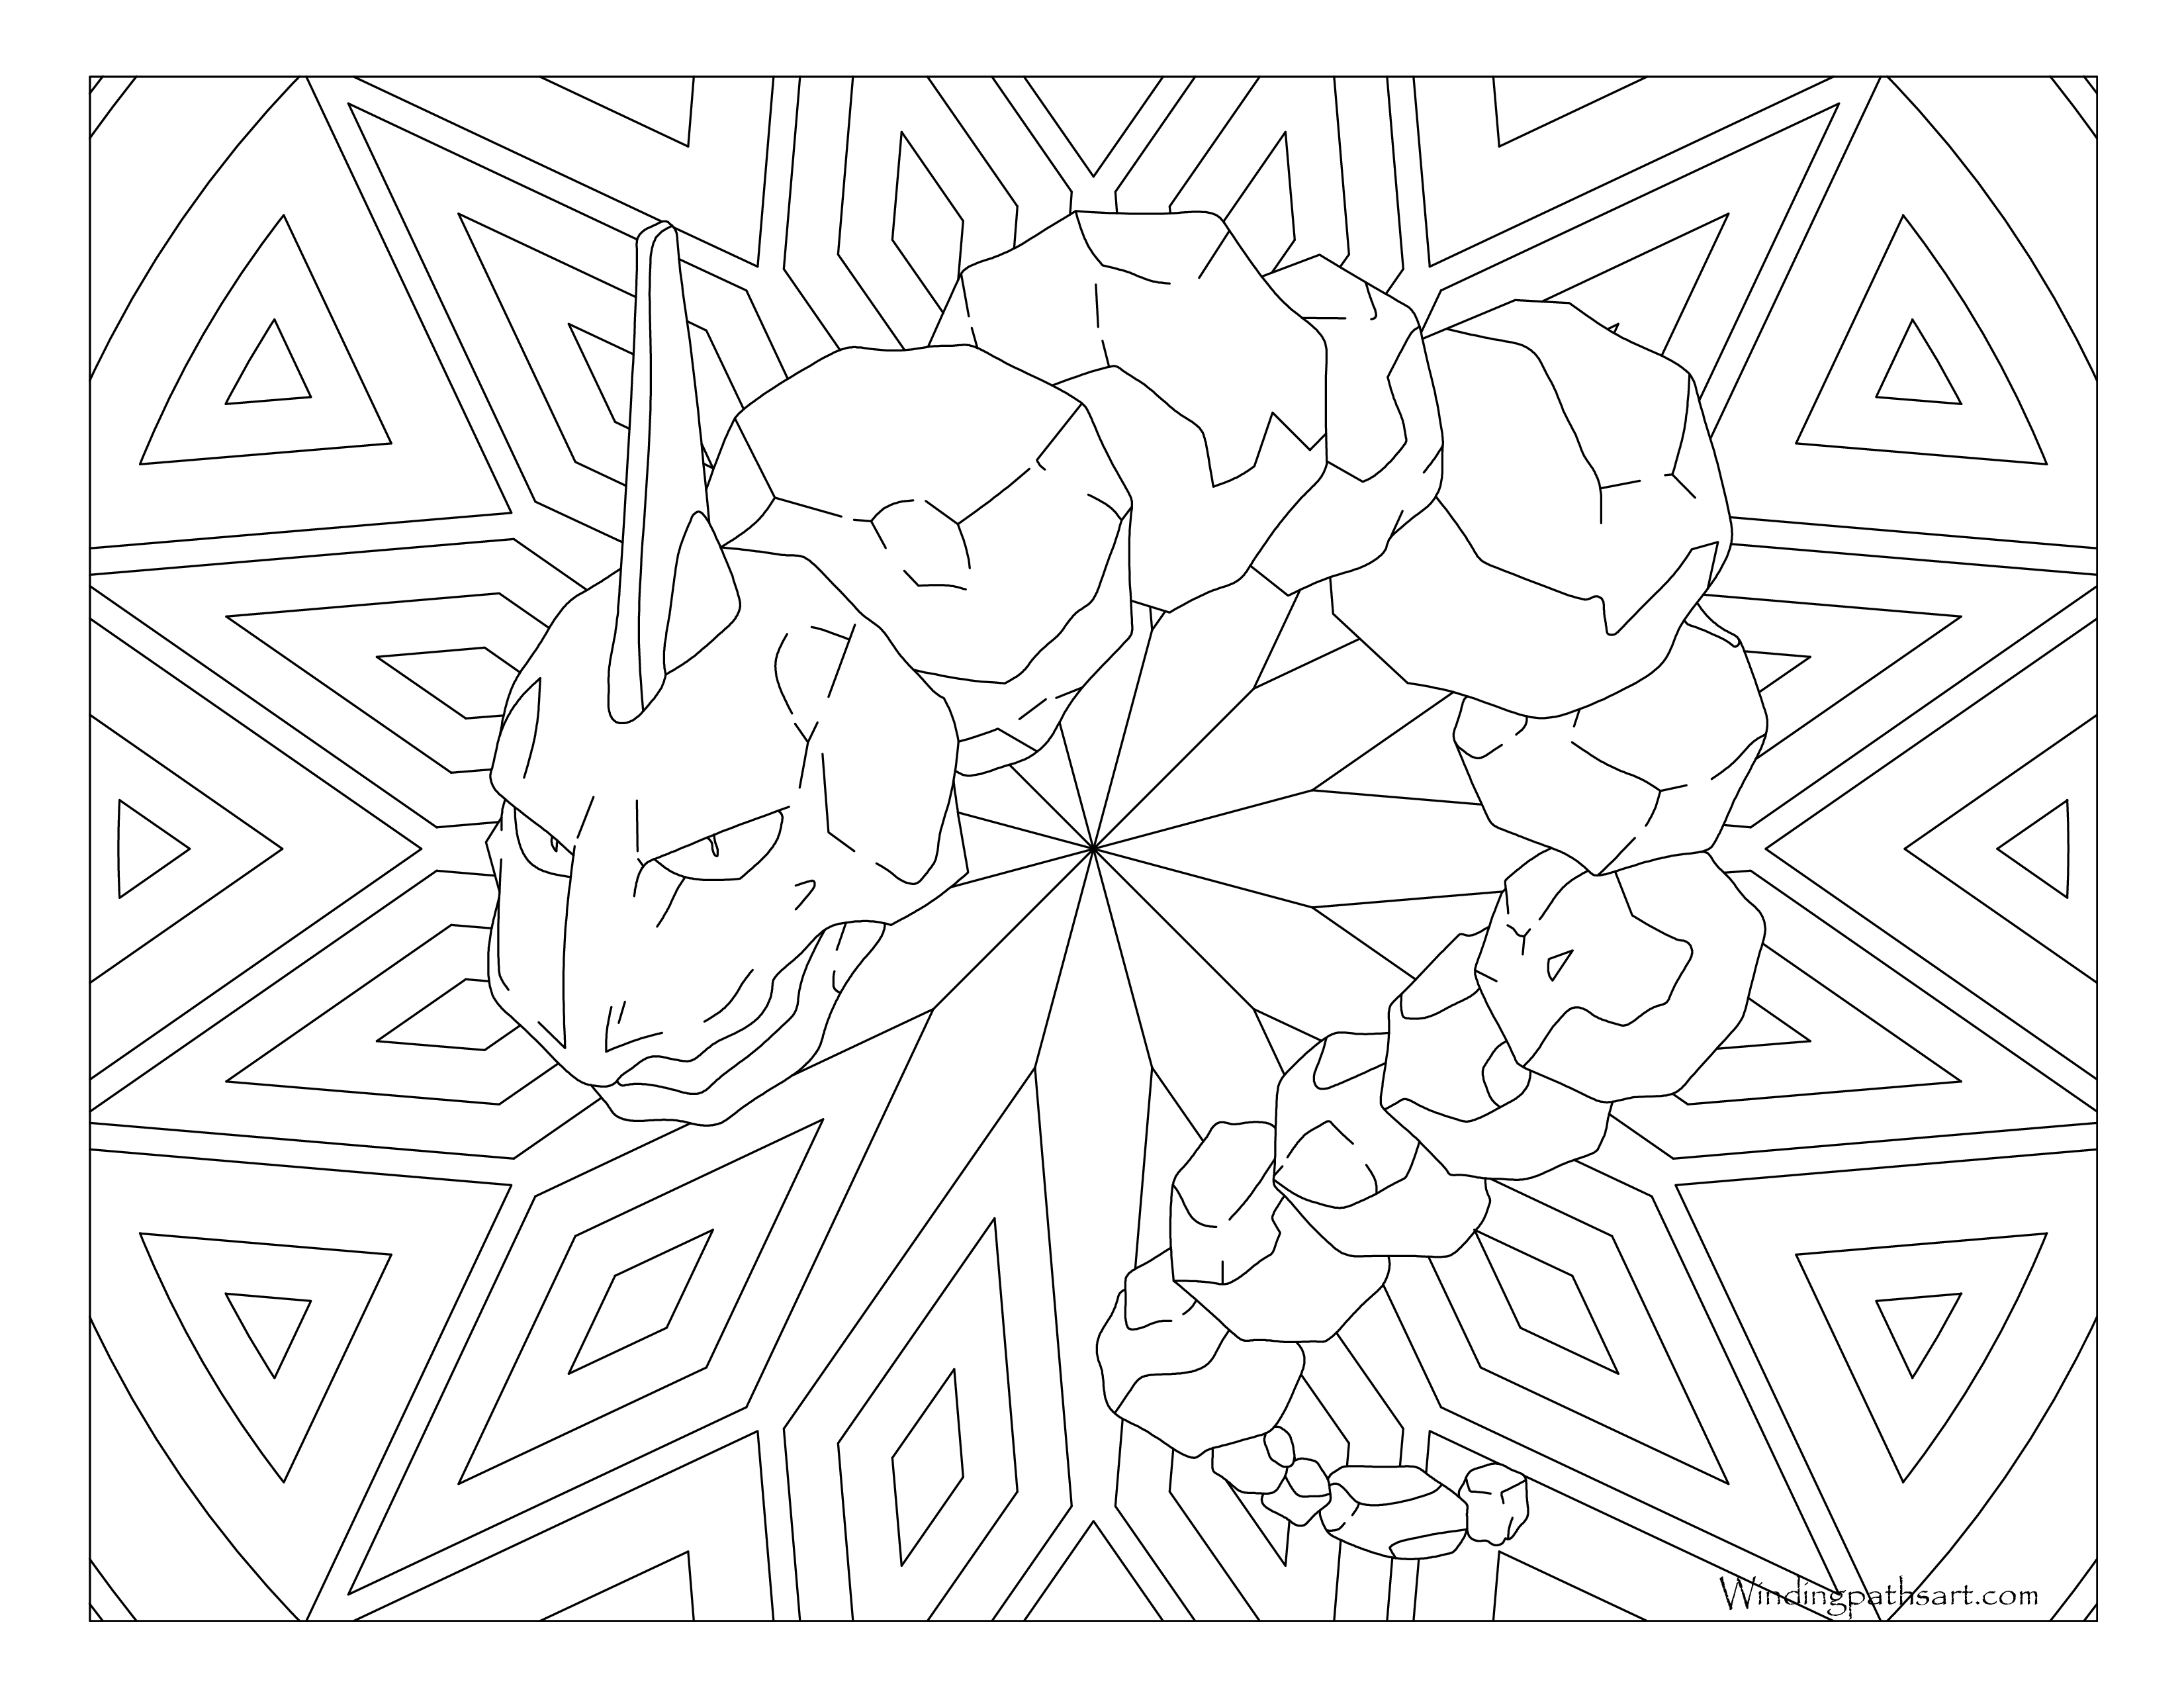 onix pokemon coloring page onix coloring pages at getdrawings free download onix pokemon coloring page